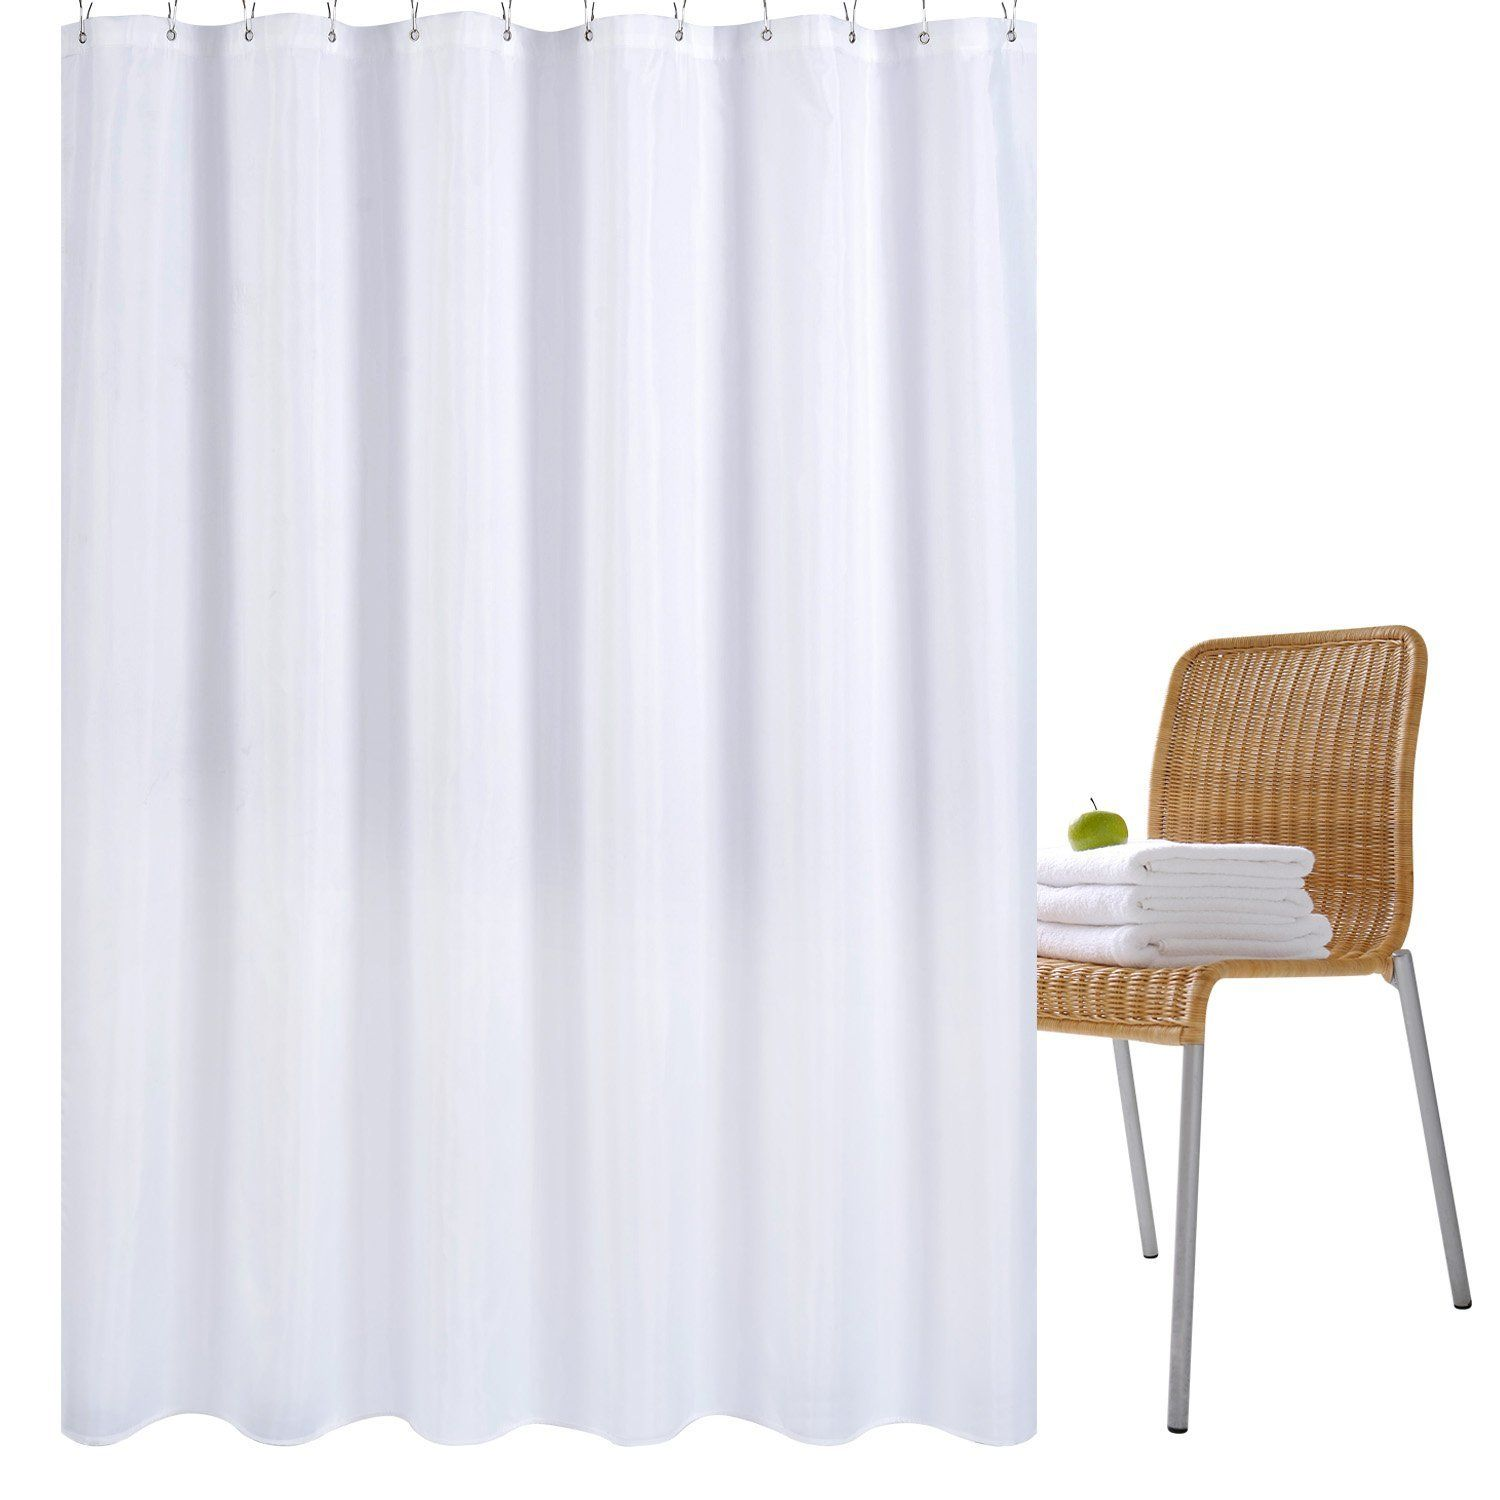 Wimaha Fabric Shower Curtain Mildew Resistant Water Repellent And